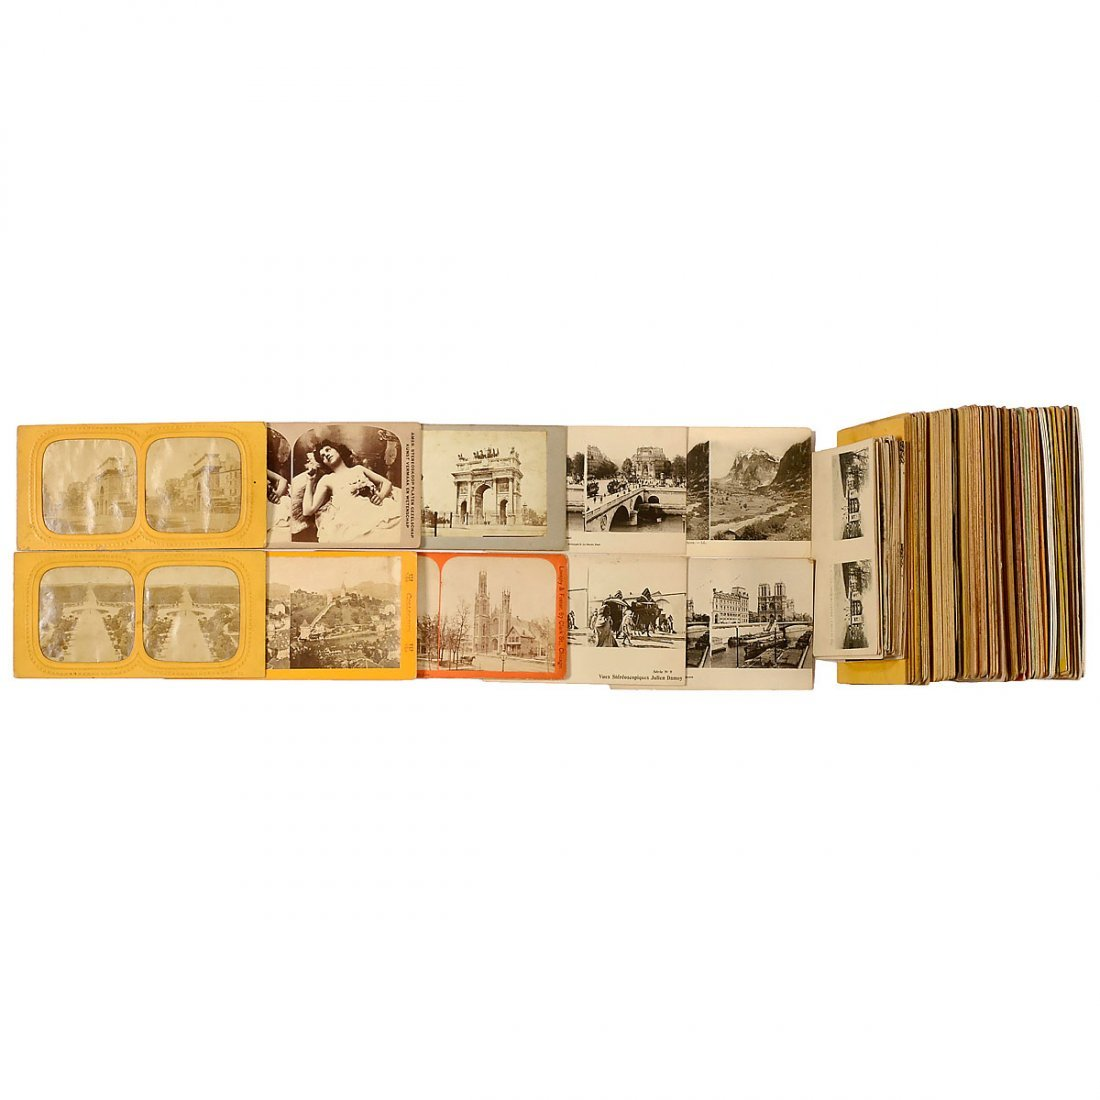 Approx. 120 Stereo Cards 9 x 18 cm, 1900 onwards